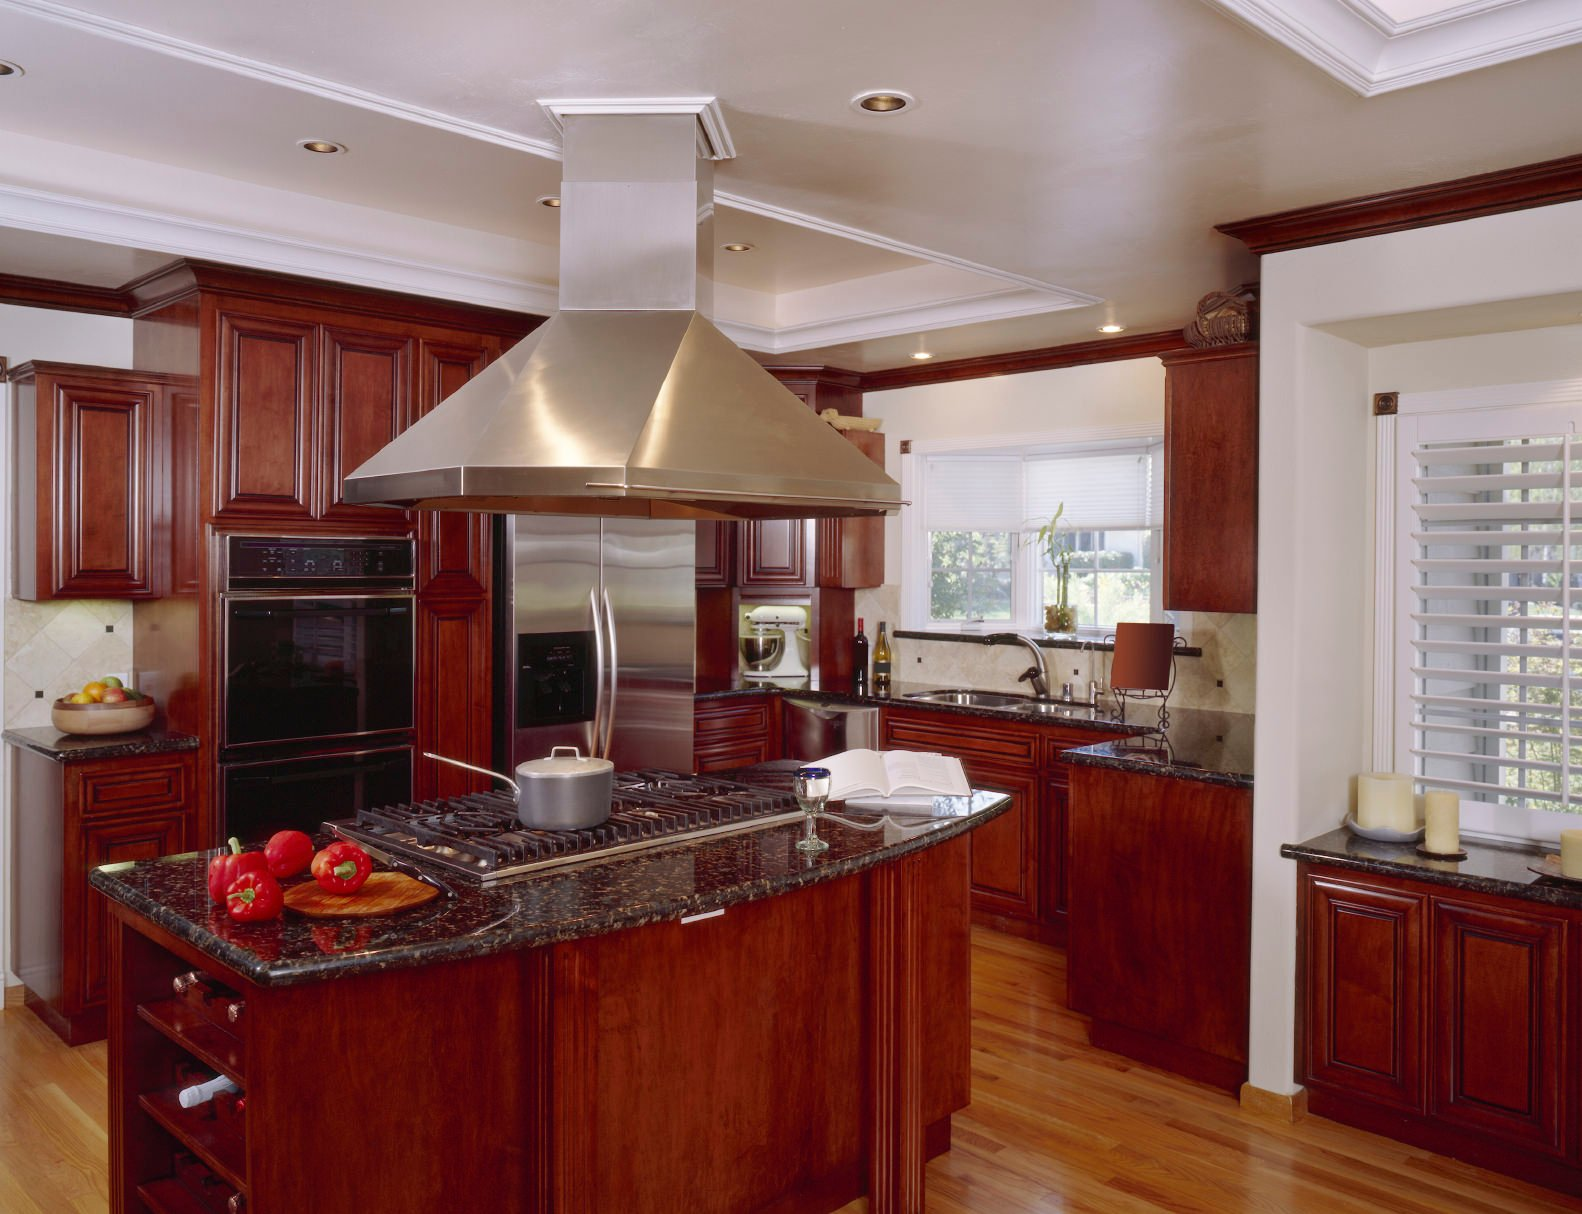 This kitchen offers reddish kitchen counters and center island with granite countertops. The tray ceiling adds style to this kitchen.